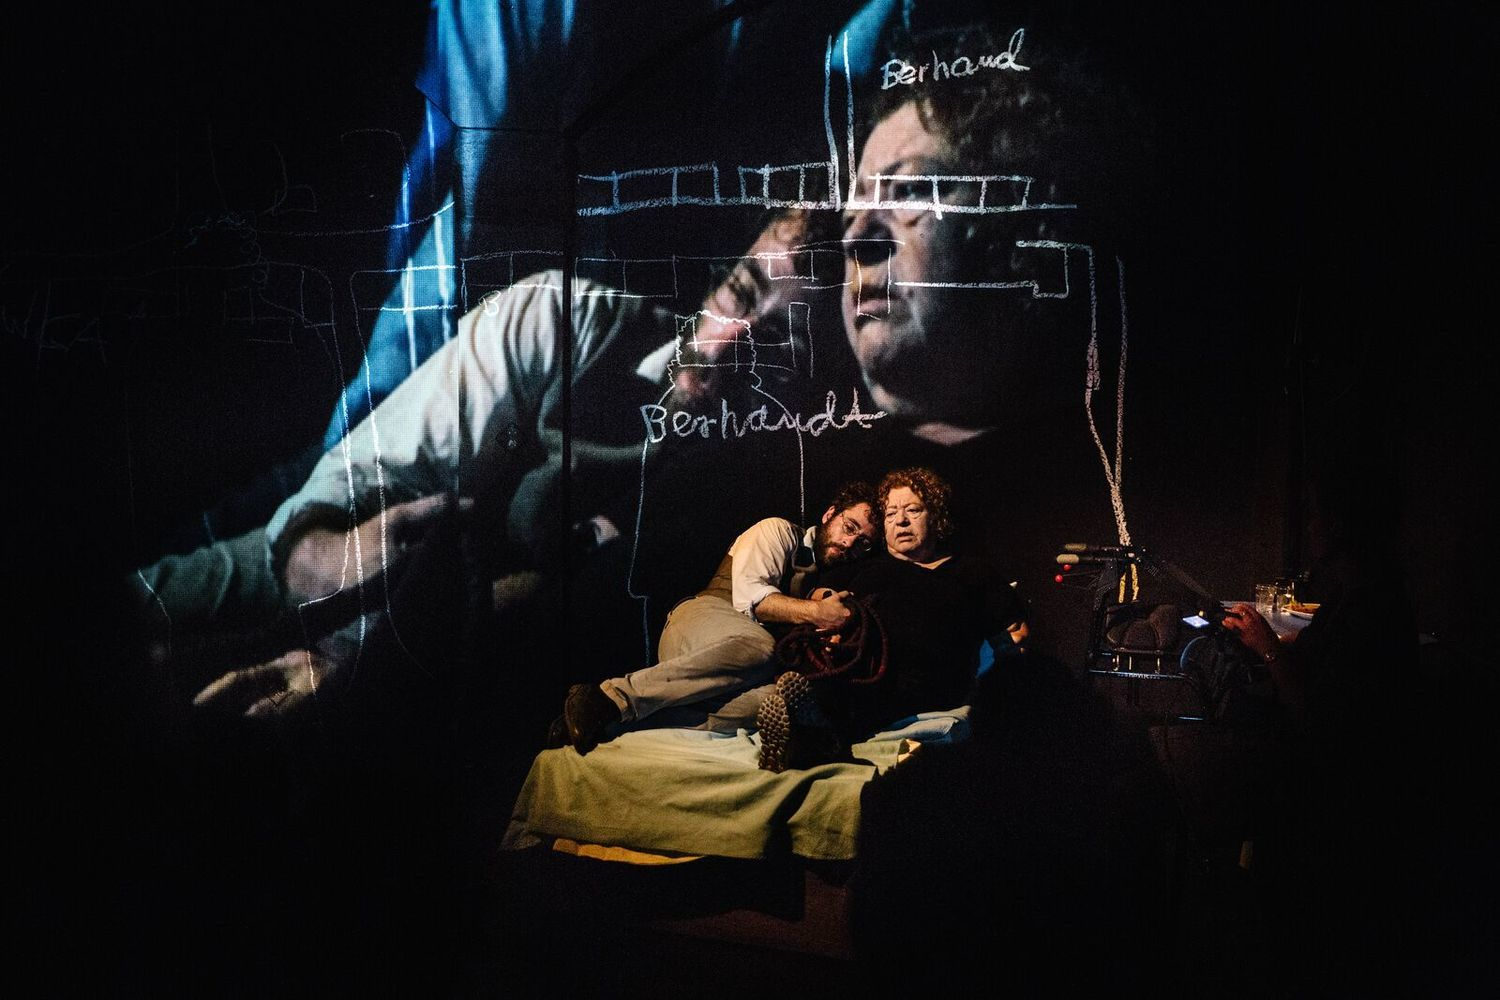 BWW Review: WE KEEP COMING BACK is a Visually Dynamic, Personal Look into Jewish-Polish Identity